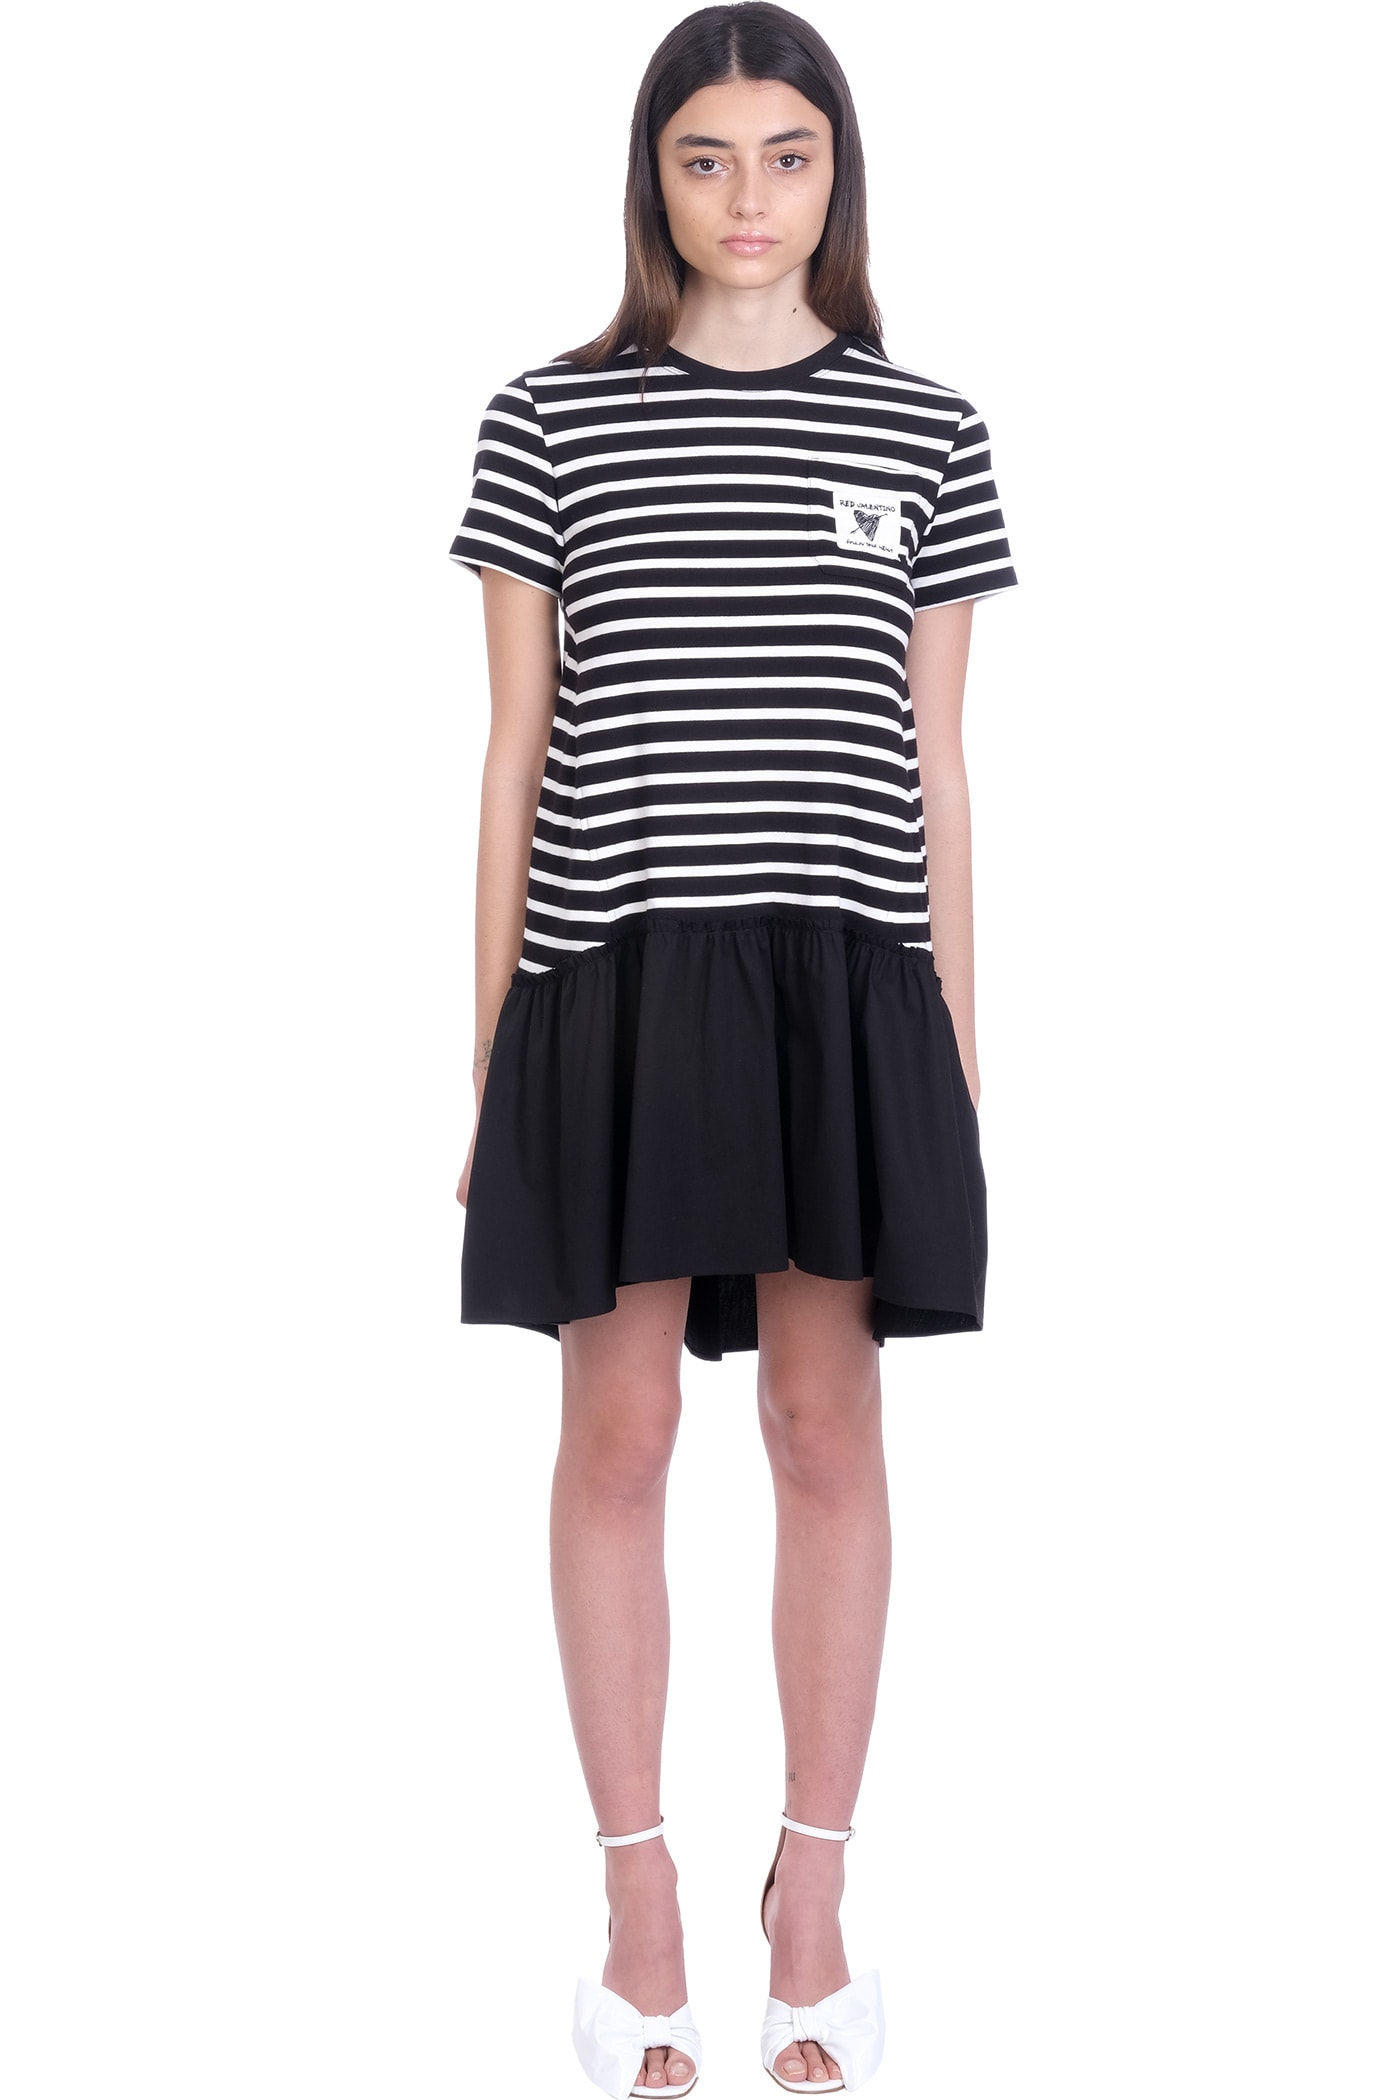 Red Valentino Cottons DRESS IN BLACK COTTON